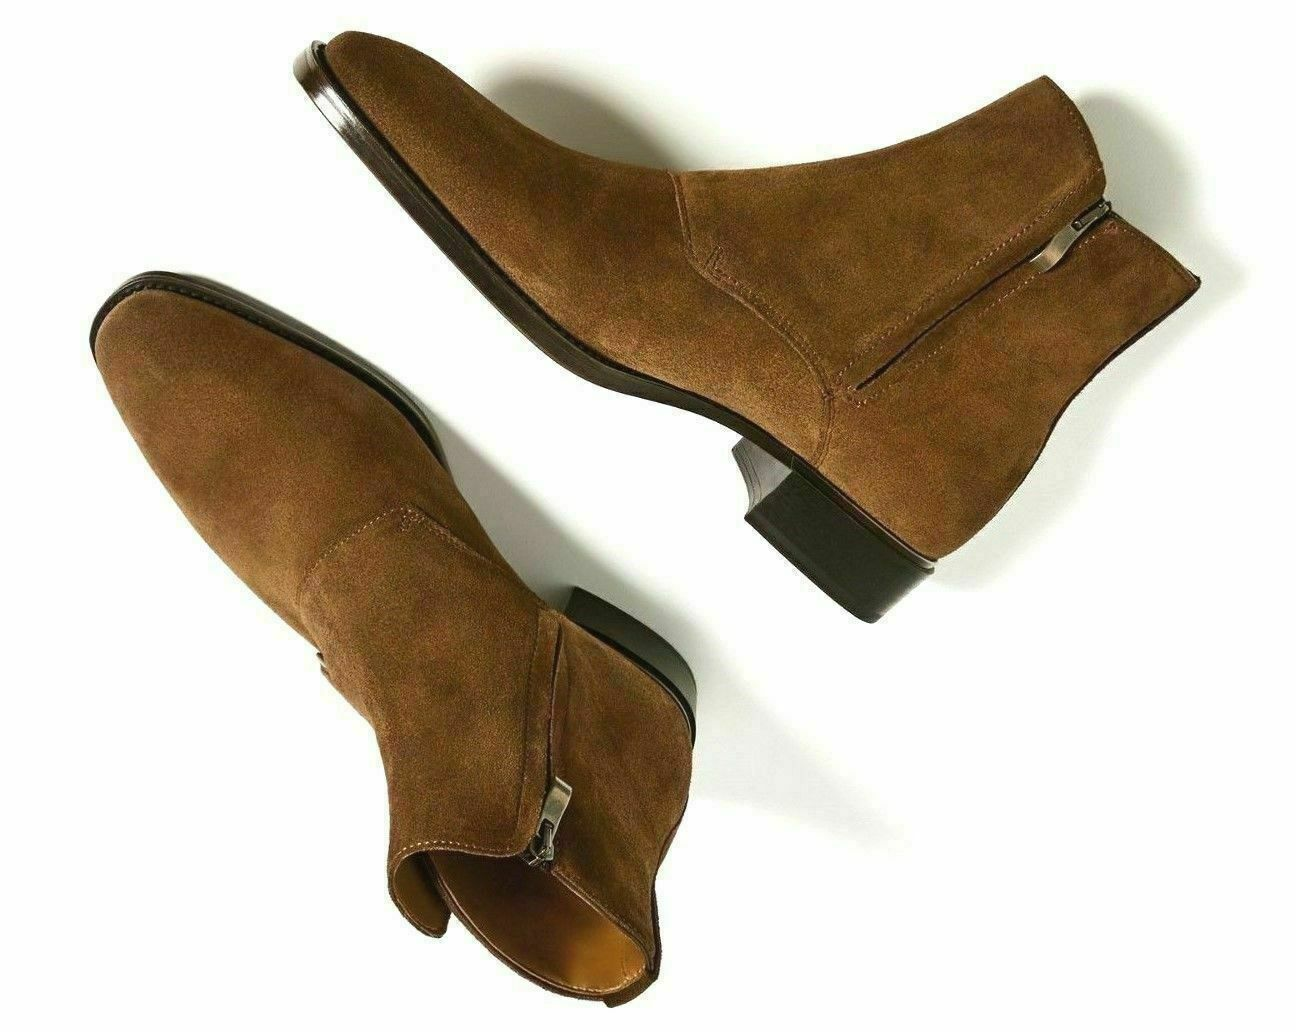 NEW-Mens Handmade Boots Brown Suede Leather Triple Buckle Ankle High Boots/Shoes